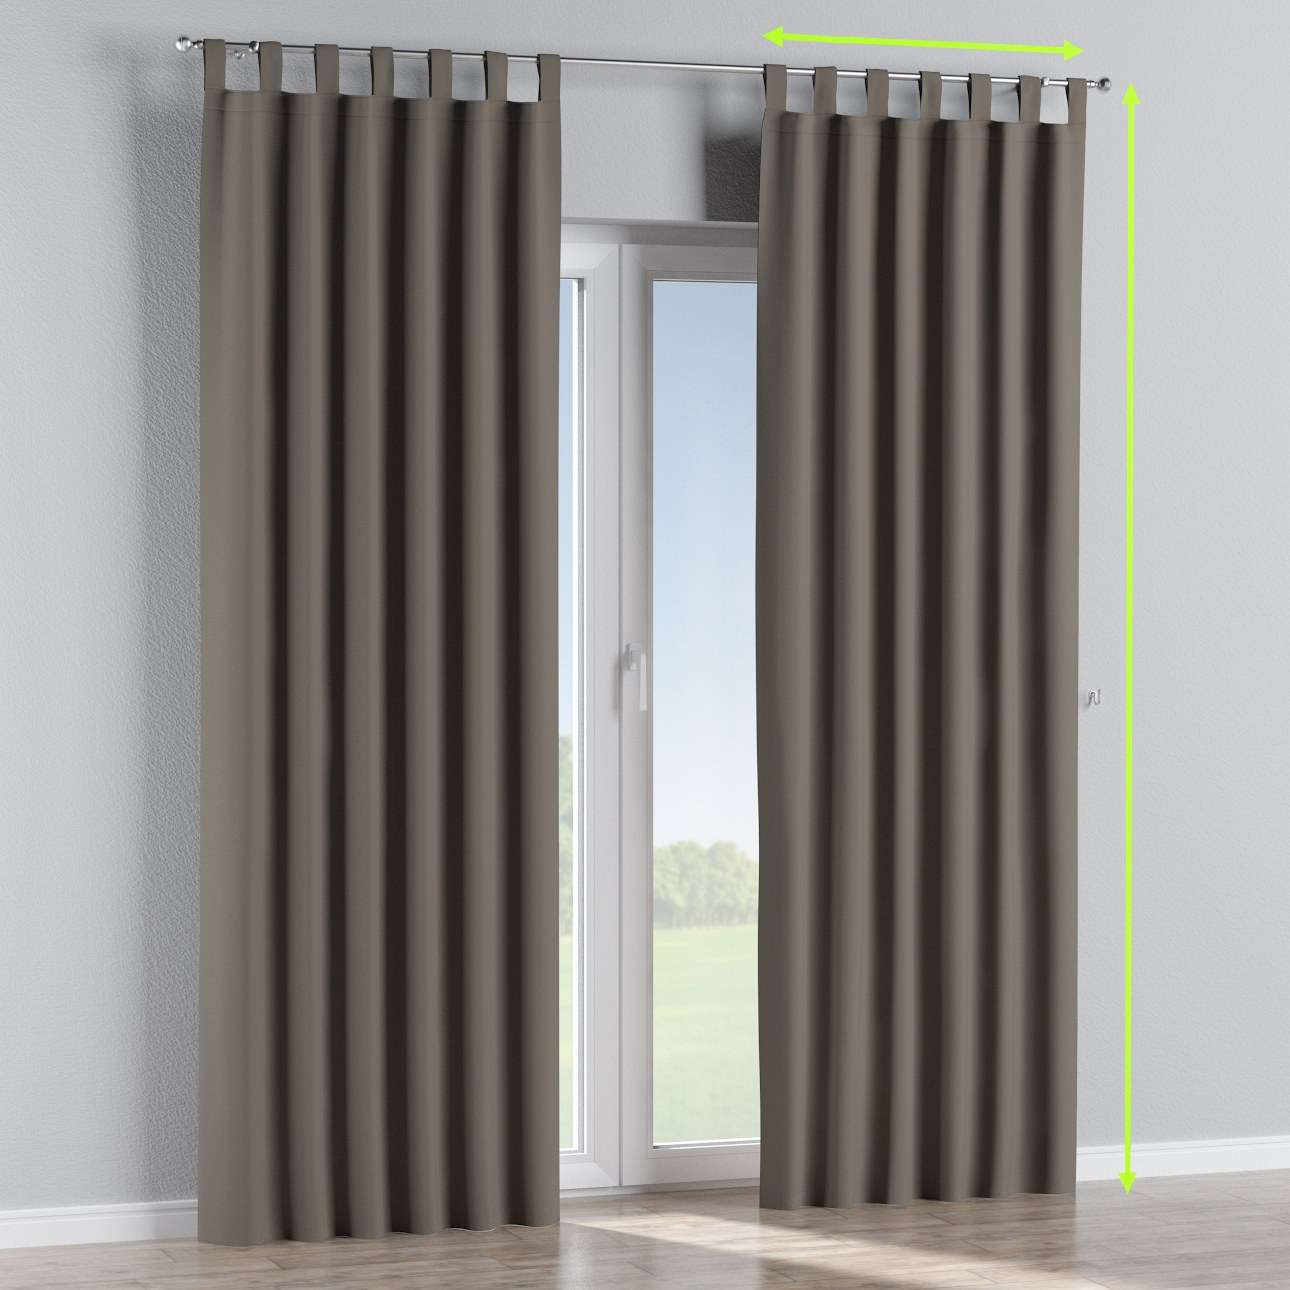 Navy White Striped Curtains Tie Up Blackout Curtains